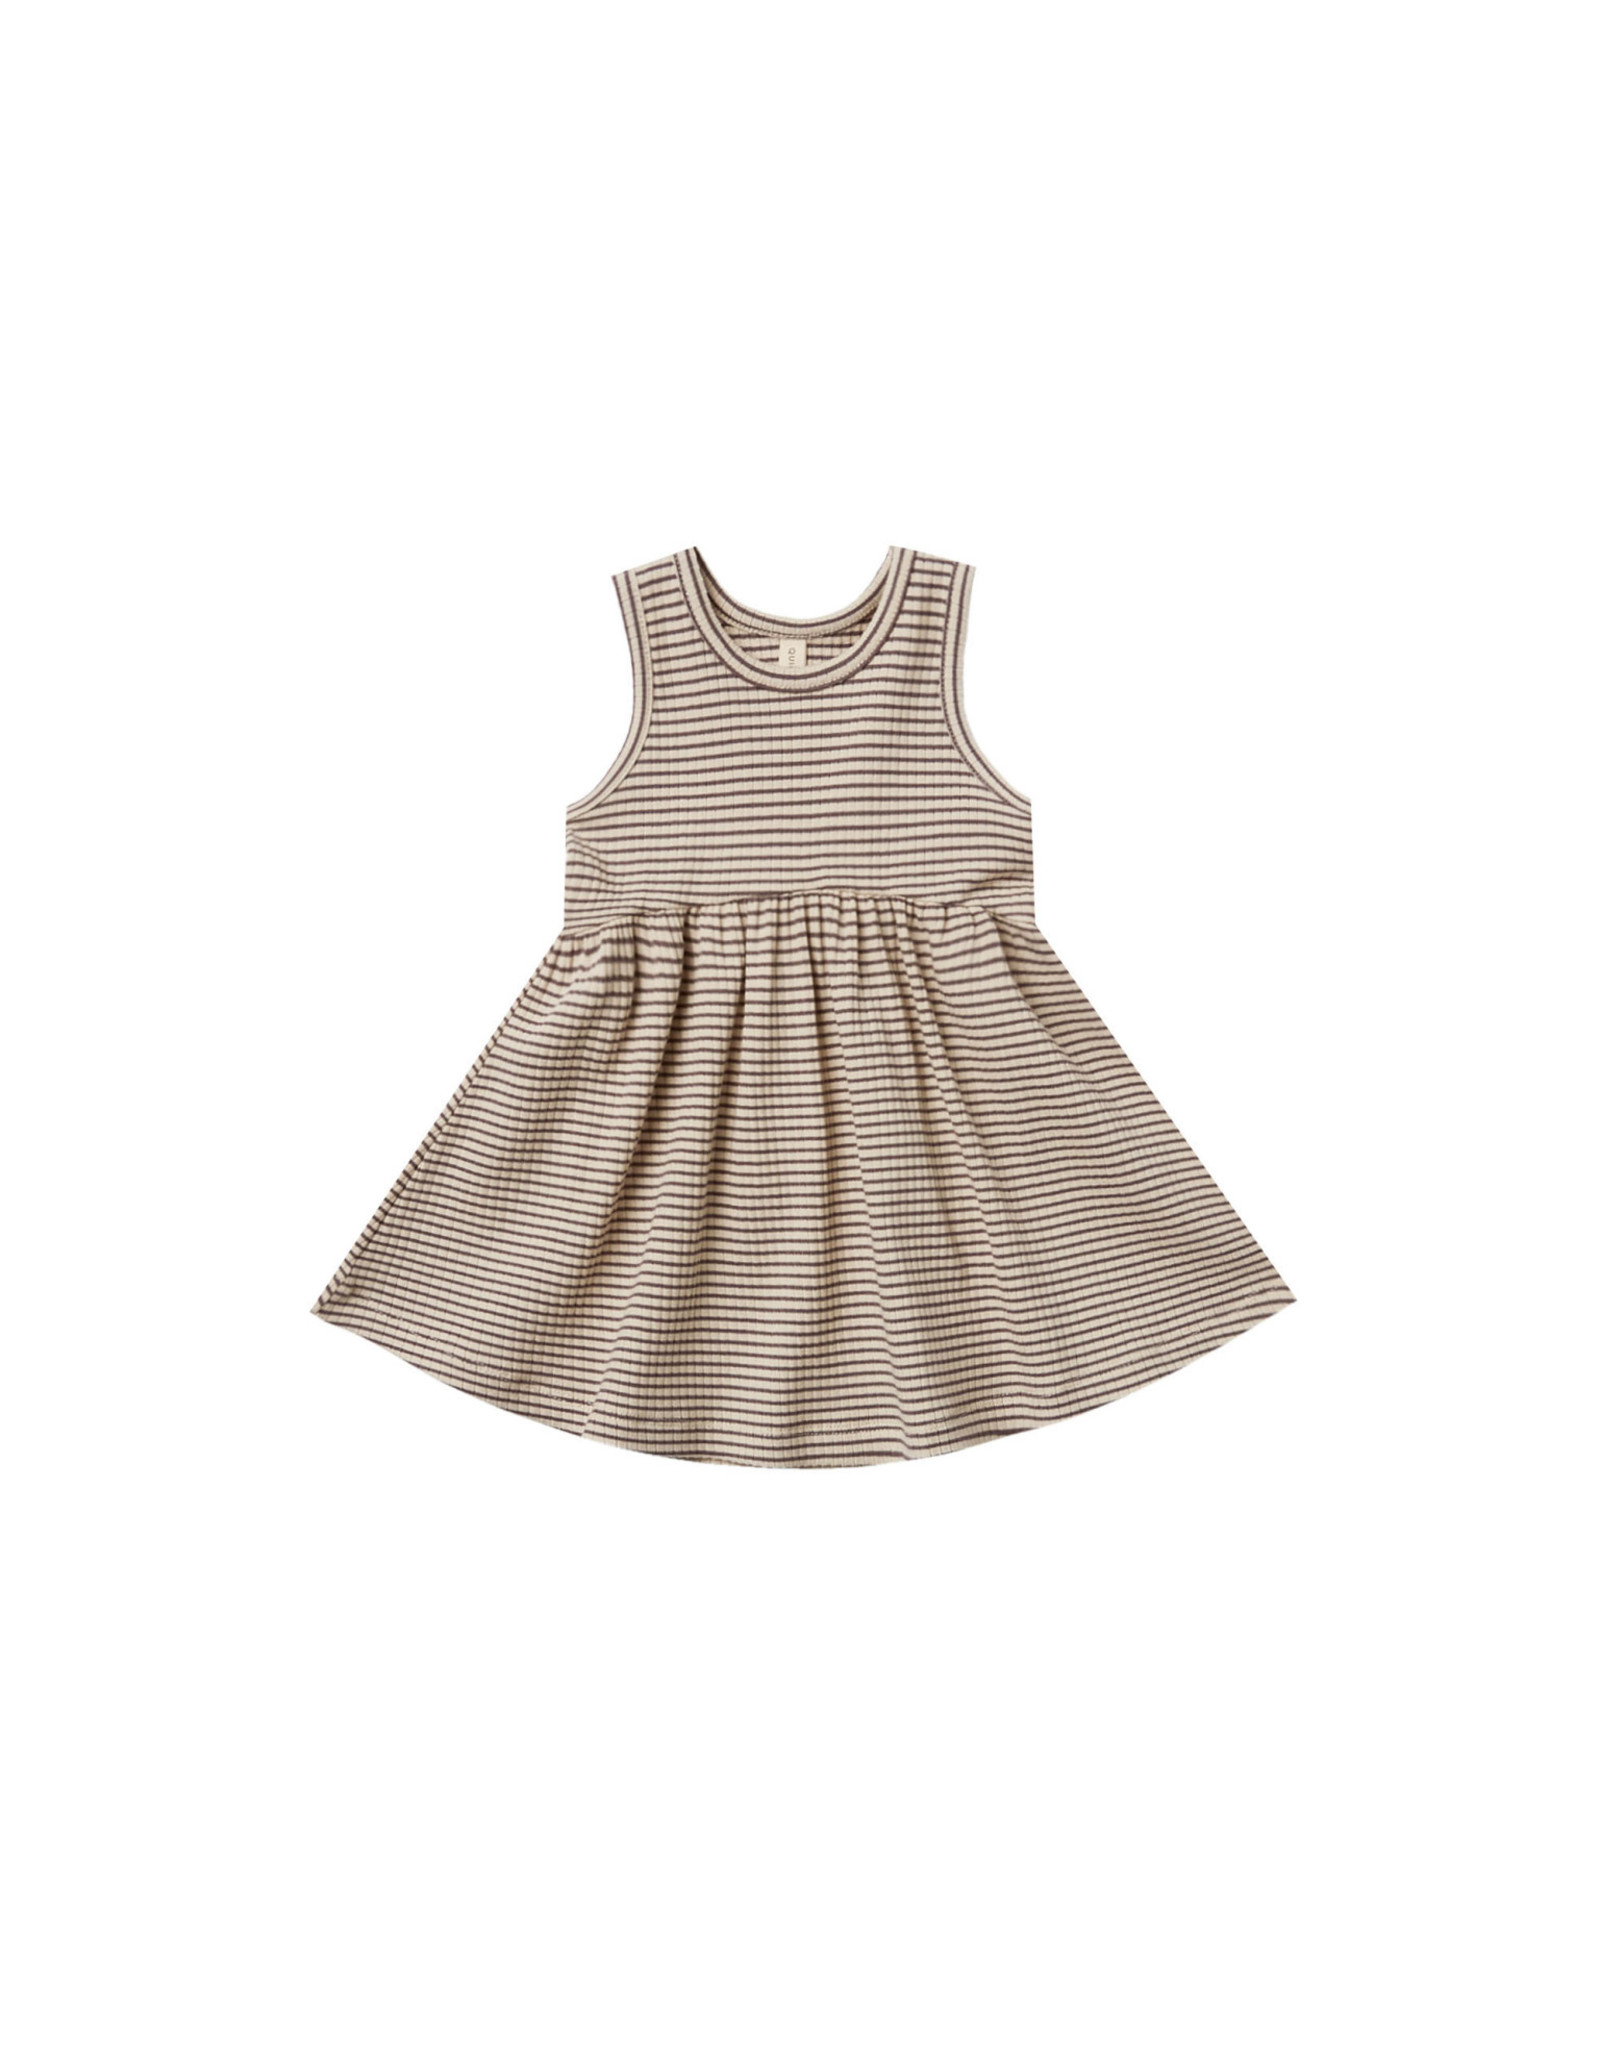 Quincy Mae Quincy Mae Striped Tank Dress, Charcoal